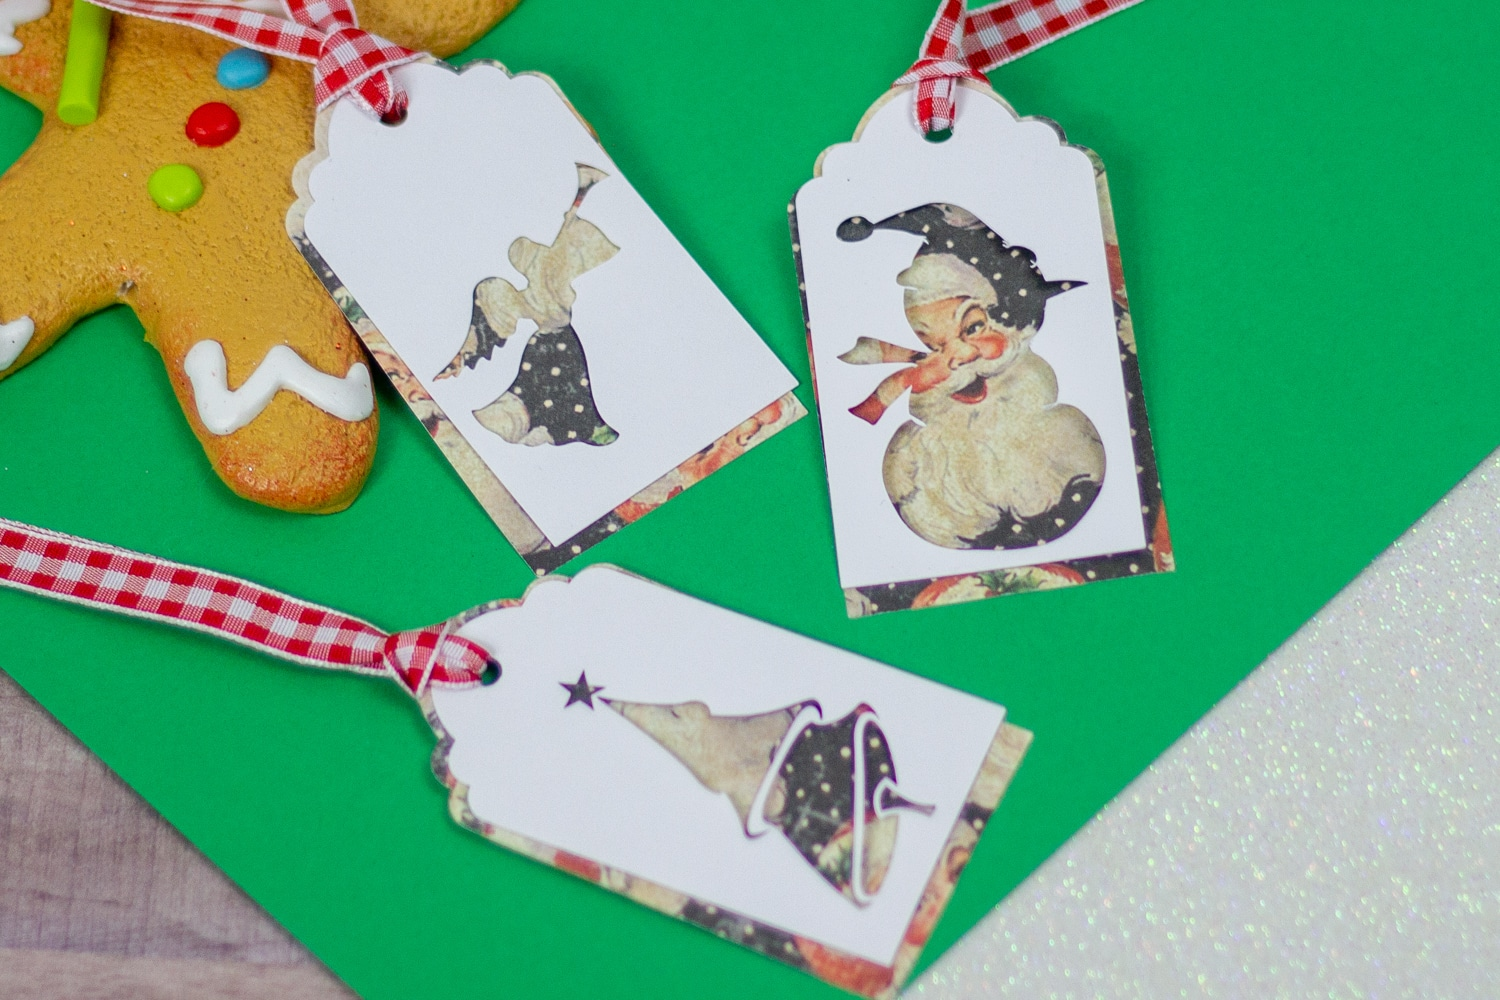 Image of Christmas Gift Tags that have Christmas graphics on them with green background and part of a gingerbread man showing.